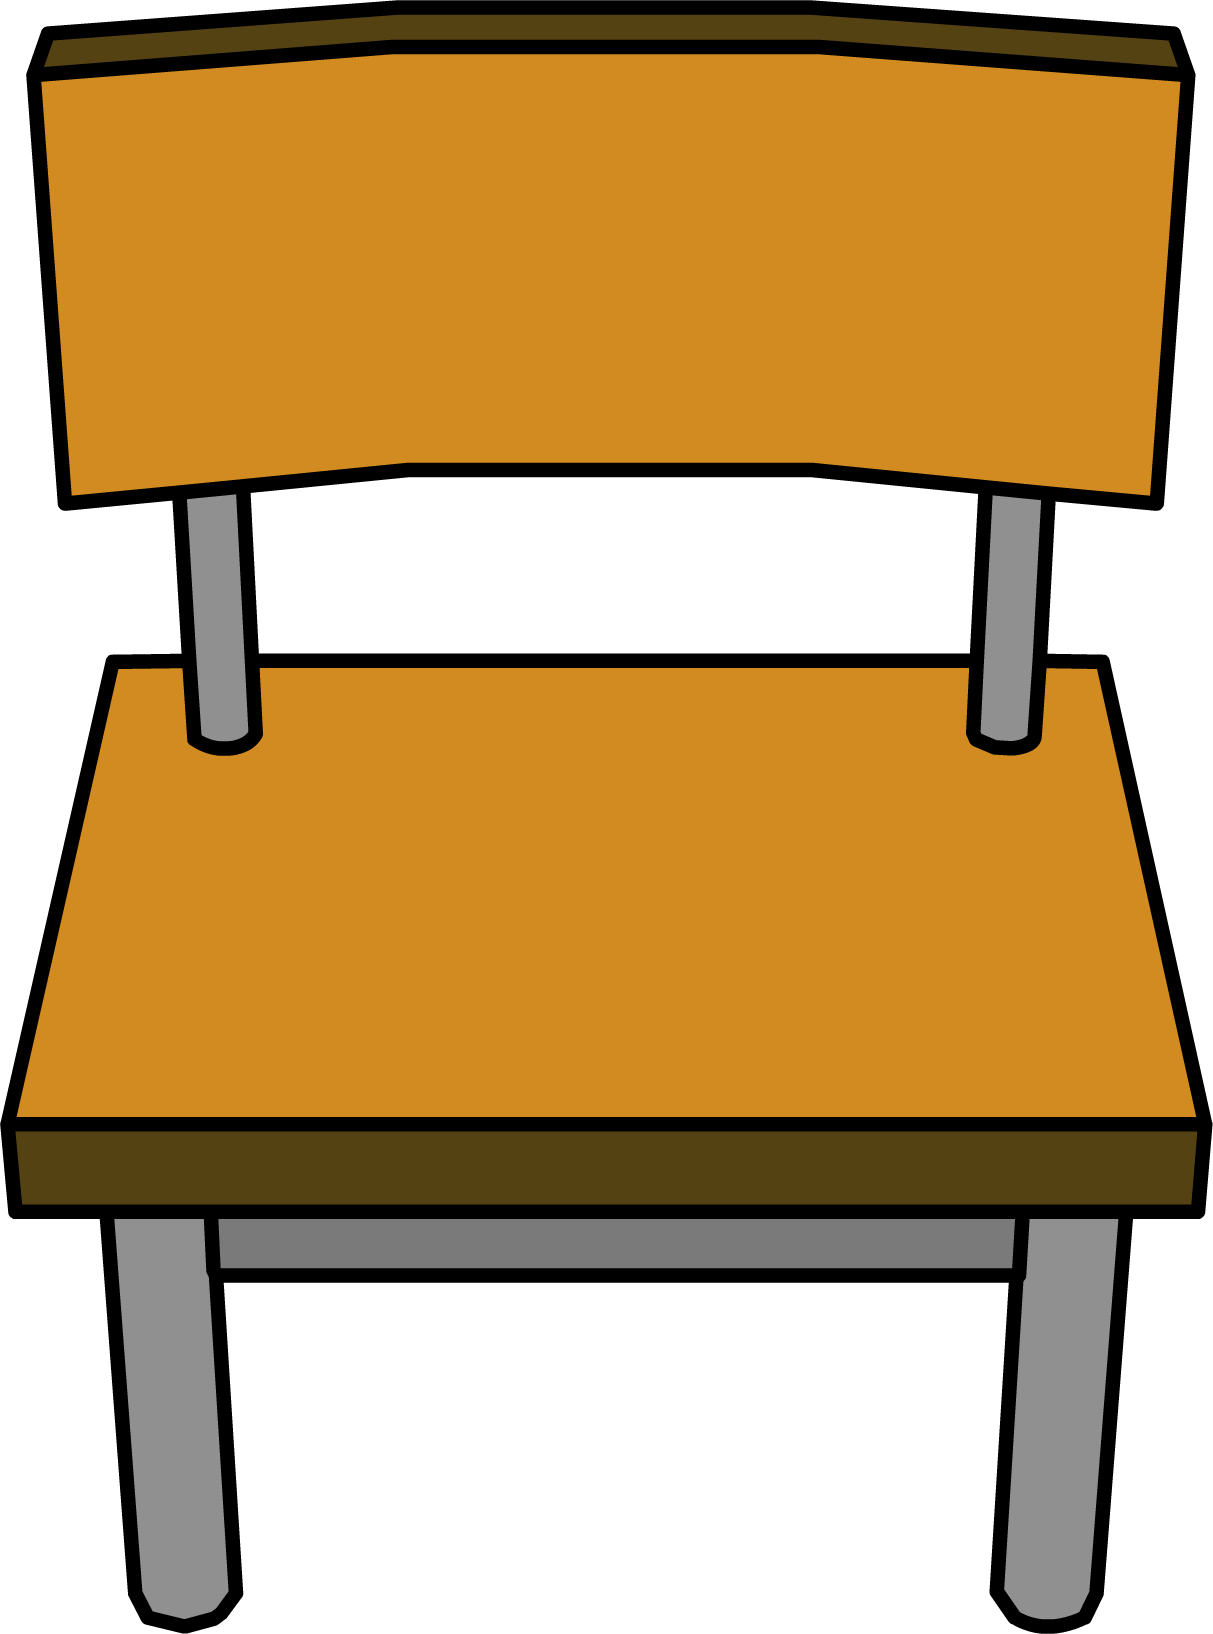 Classroom Desk Clipart | Free download on ClipArtMag